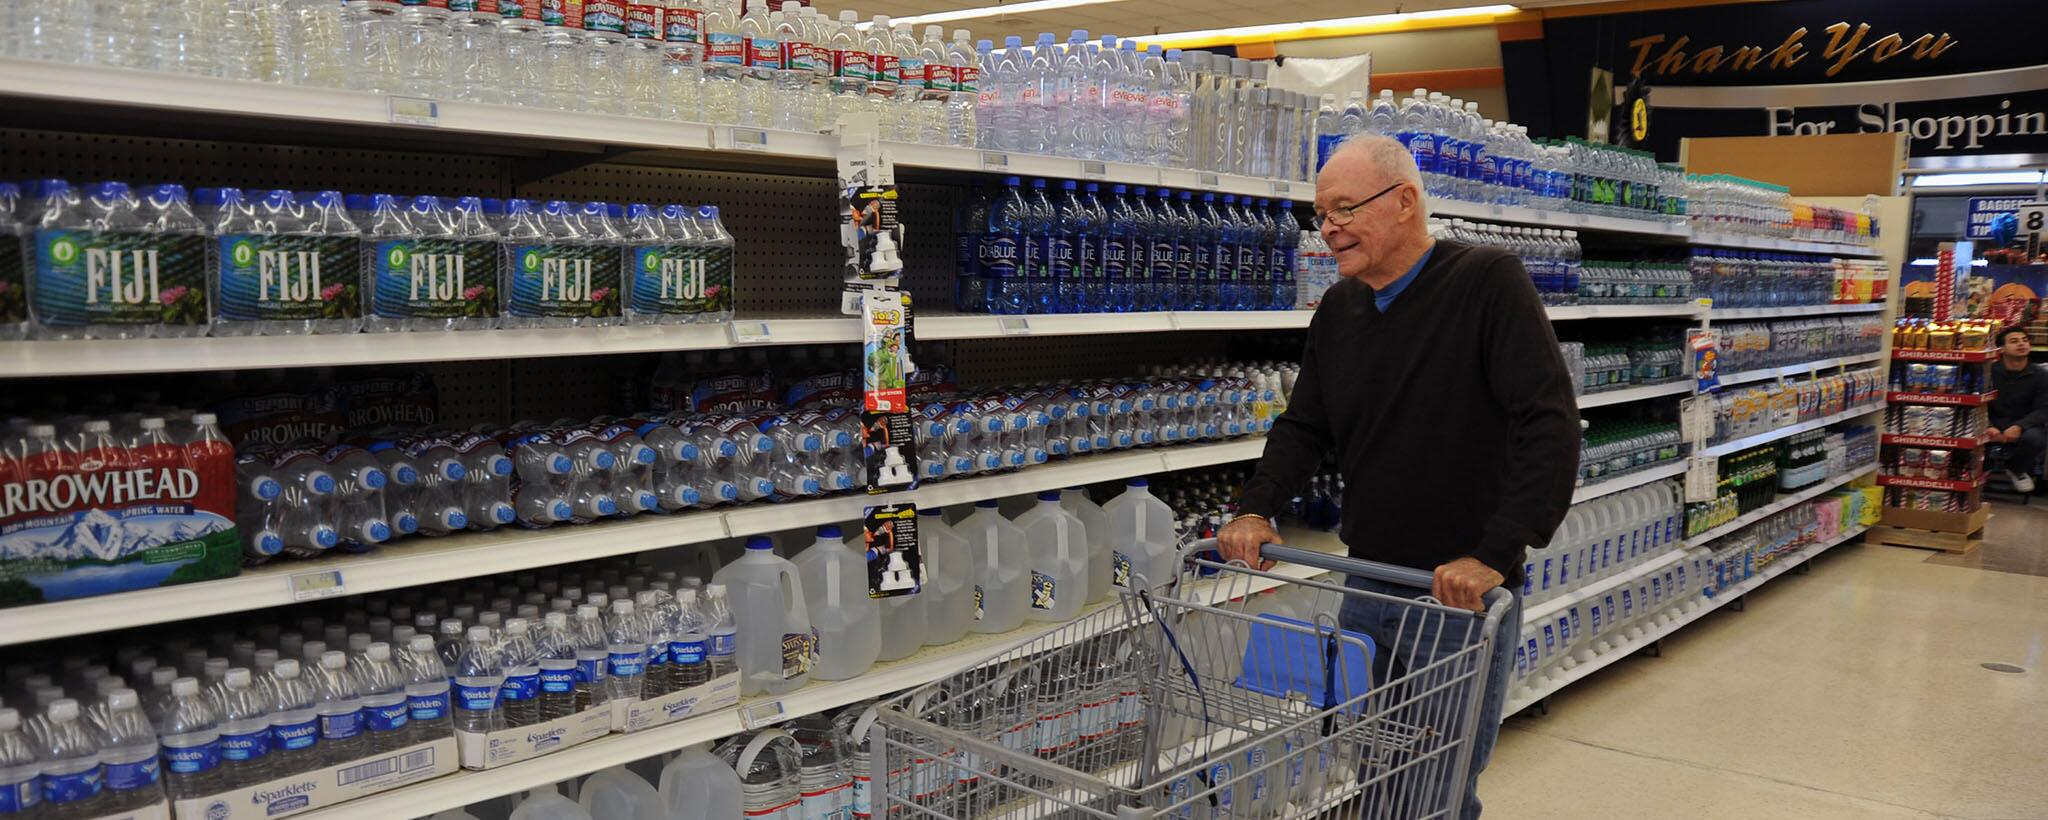 elderly man shops for water